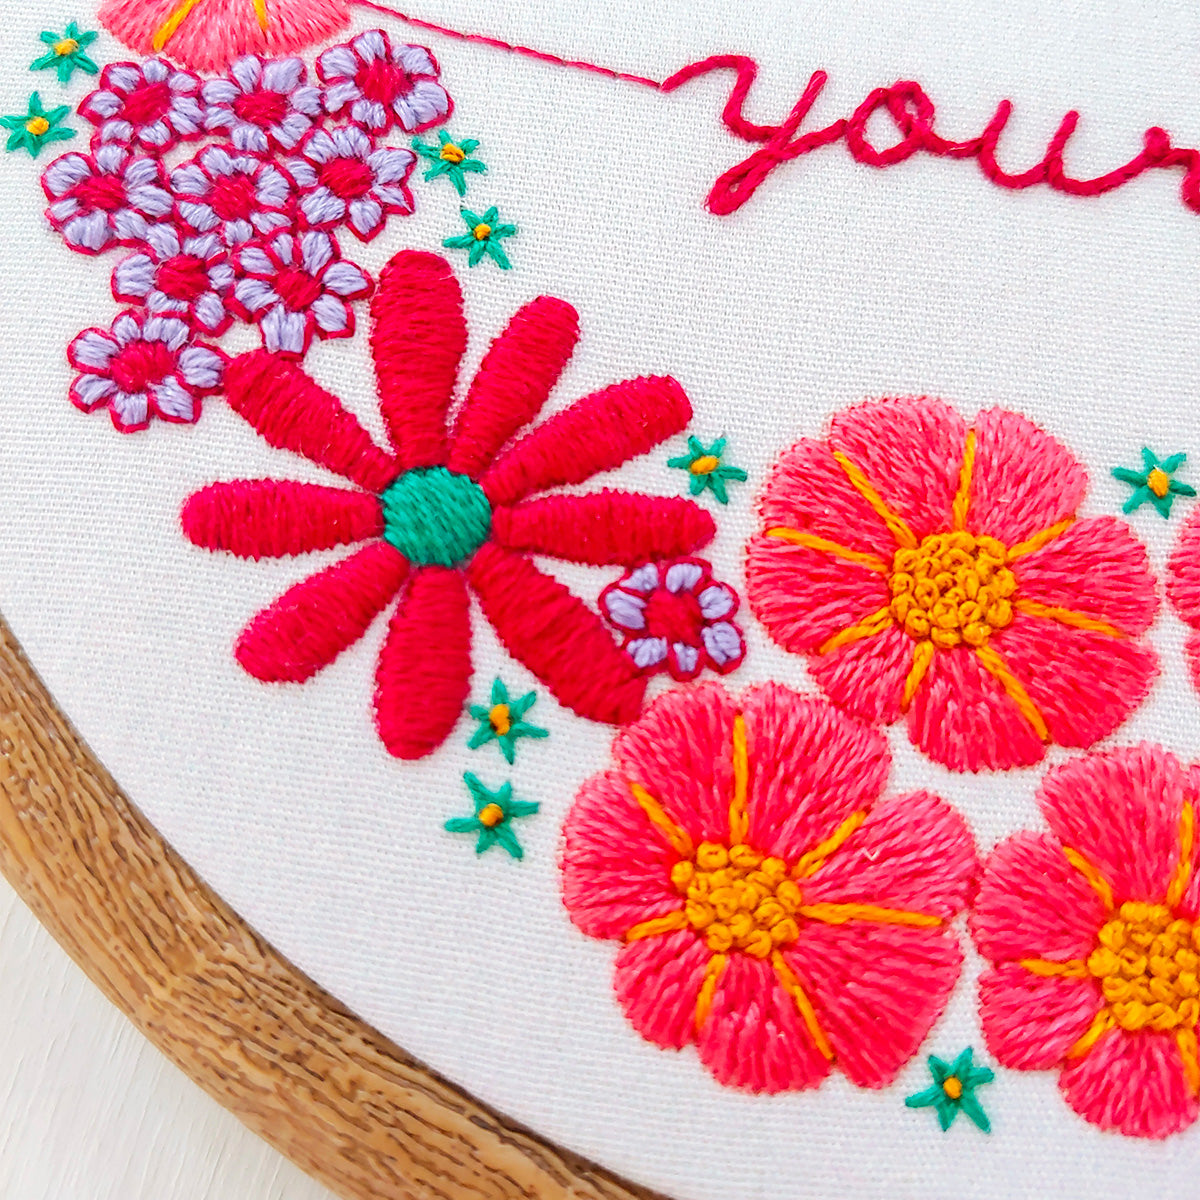 Be Gentle With Yourself Hand Embroidery Kit